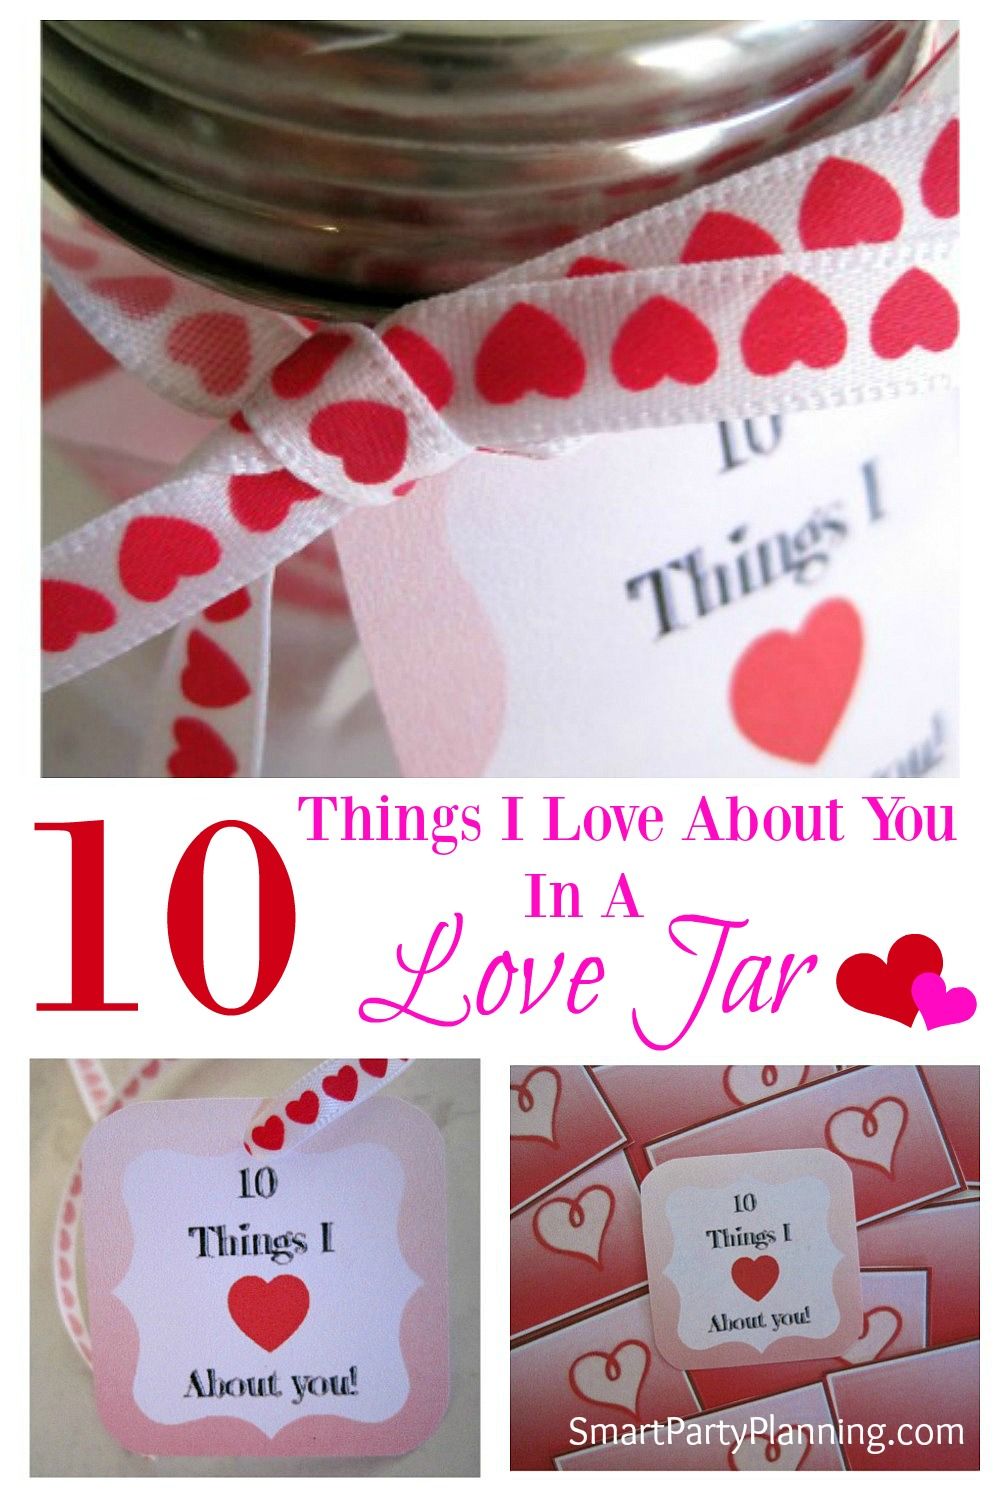 Show someone you care by filling a love jar with 10 things you love about them. Download the printable to start your awesome Valentine's gift.